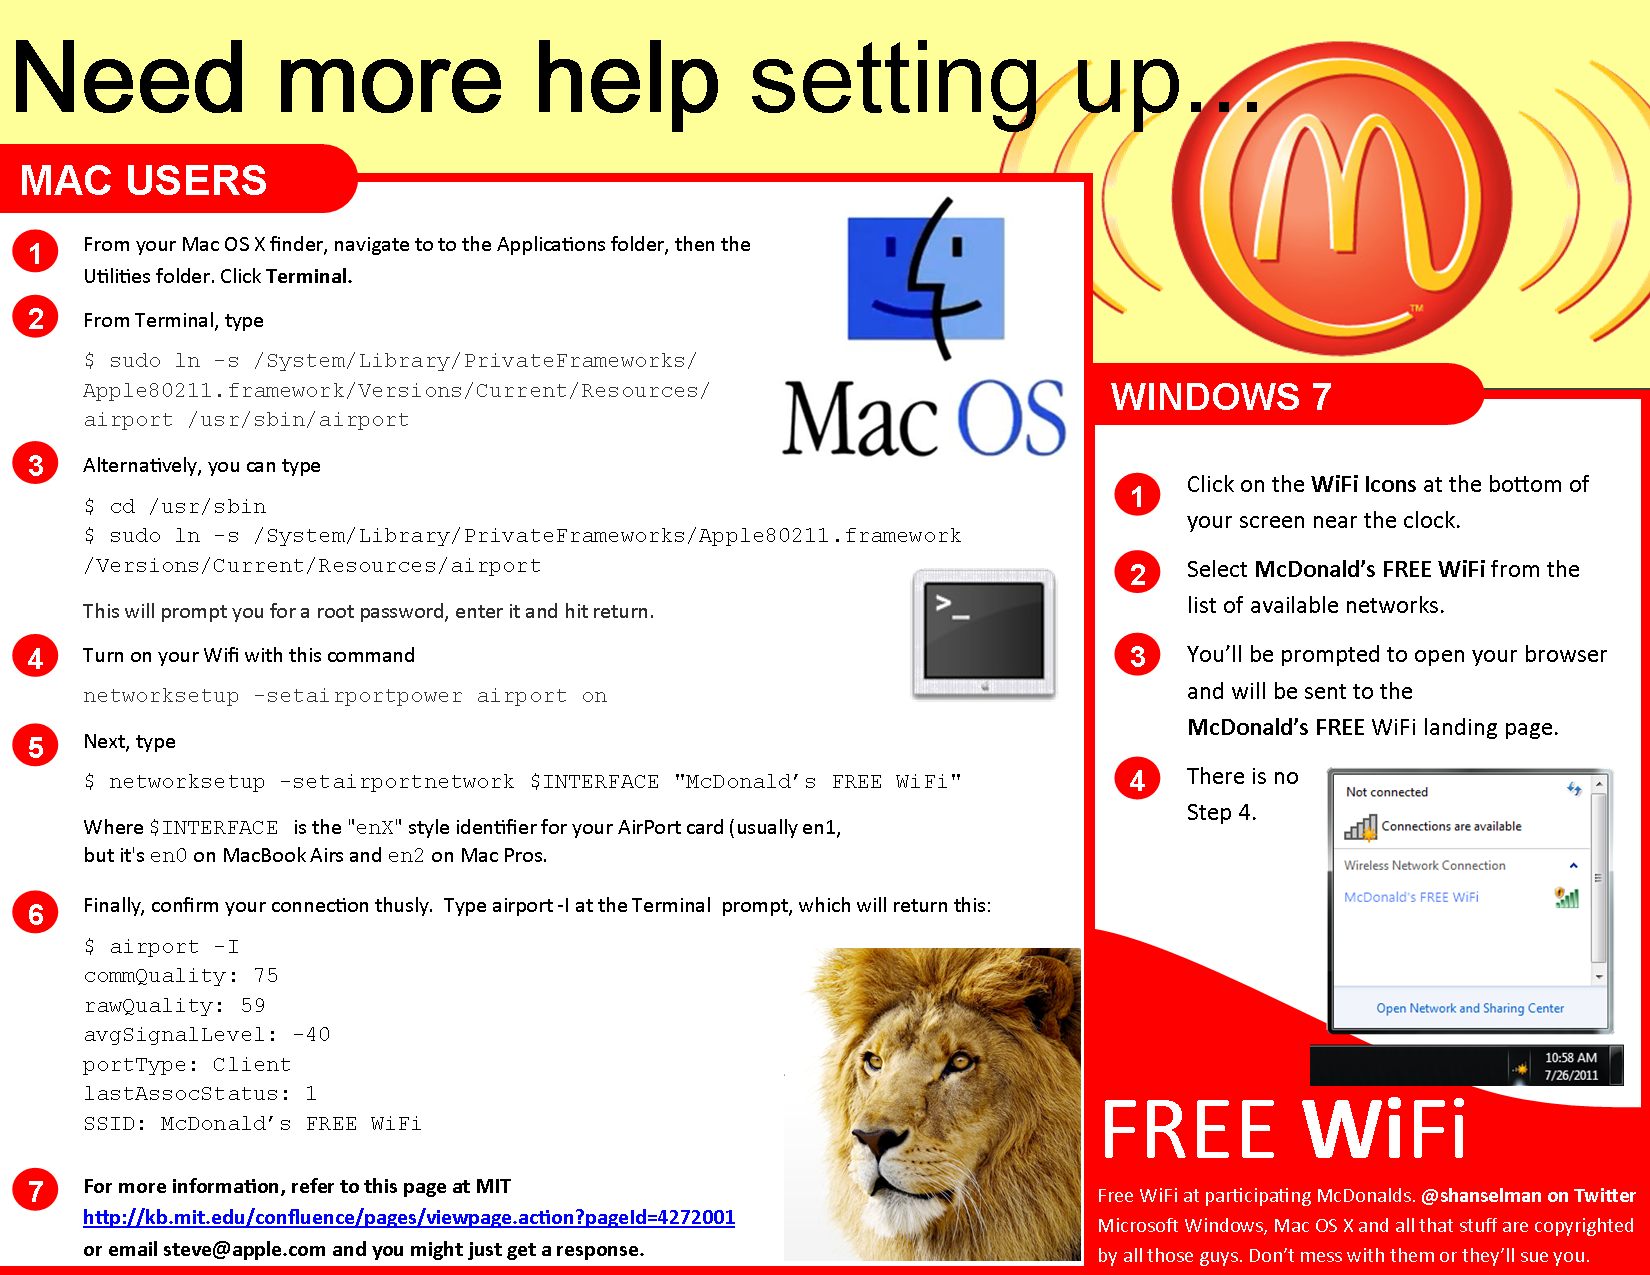 Updated for 2011 - McDonald's WiFi Guide with updates for Mac OS X